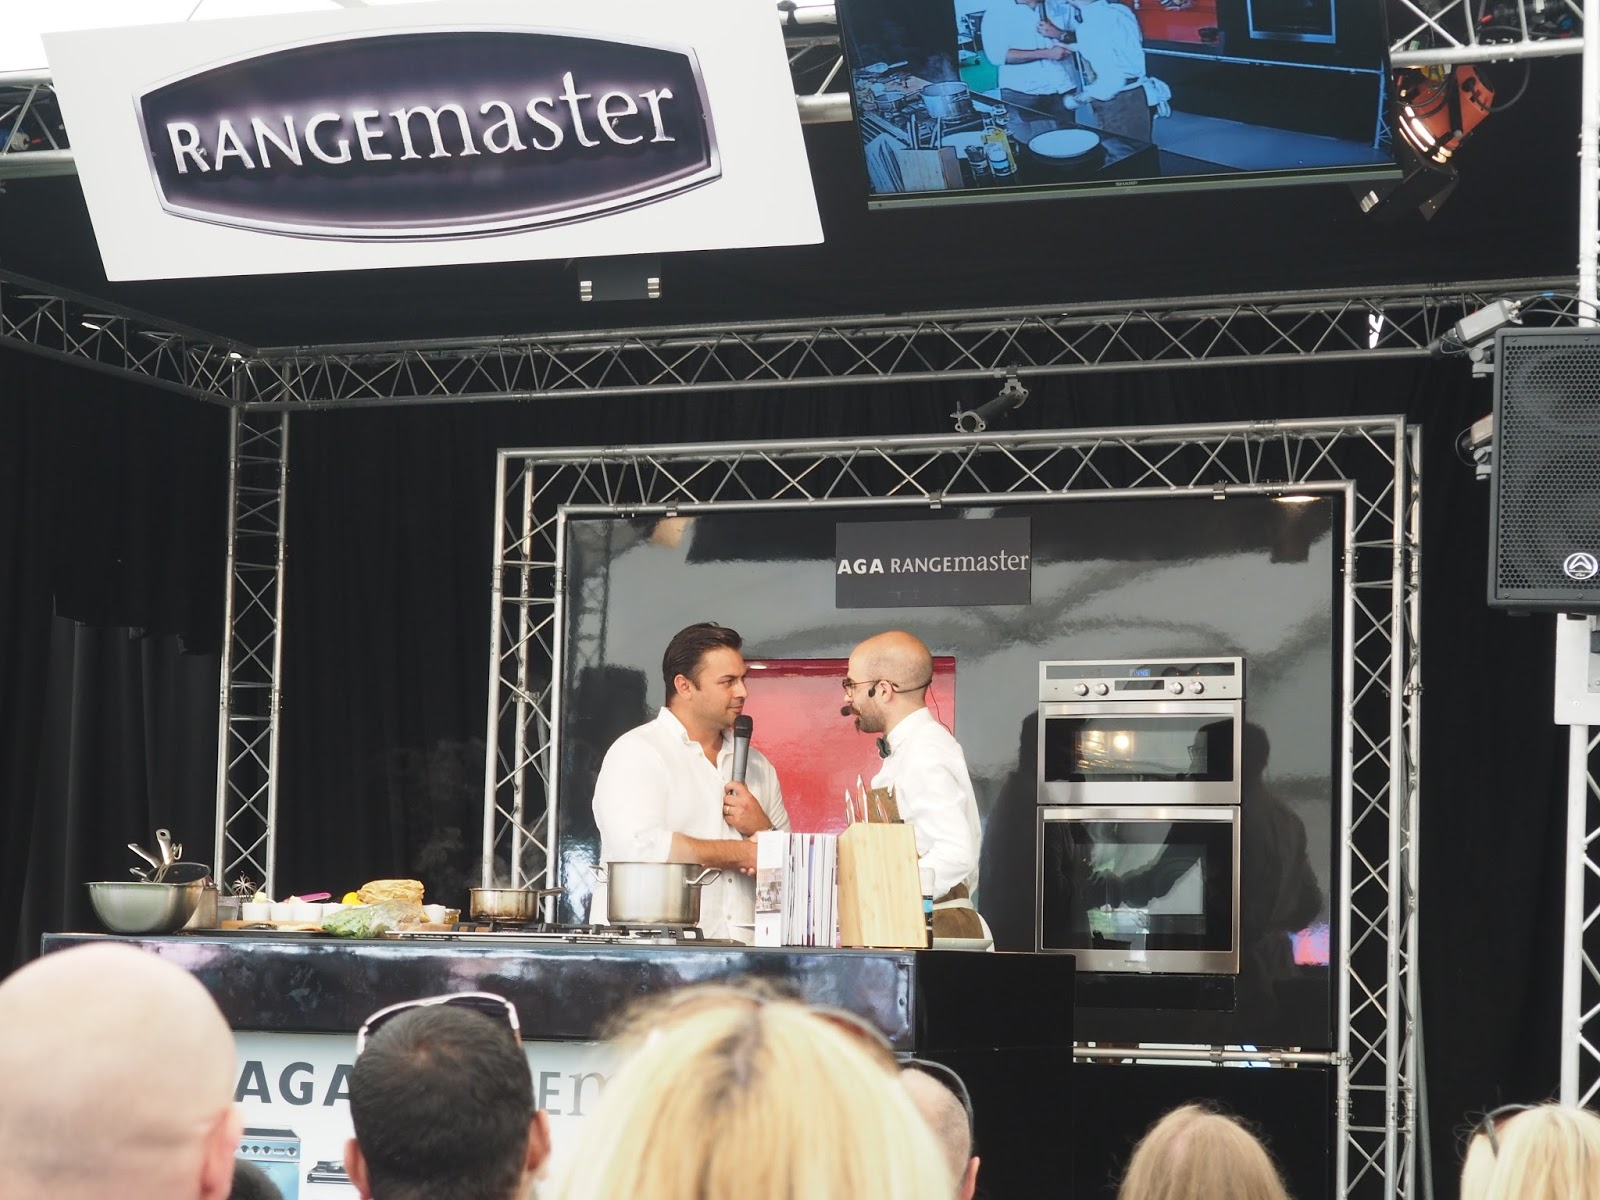 Foodies festival Birmingham Masterchef cooking demonstration